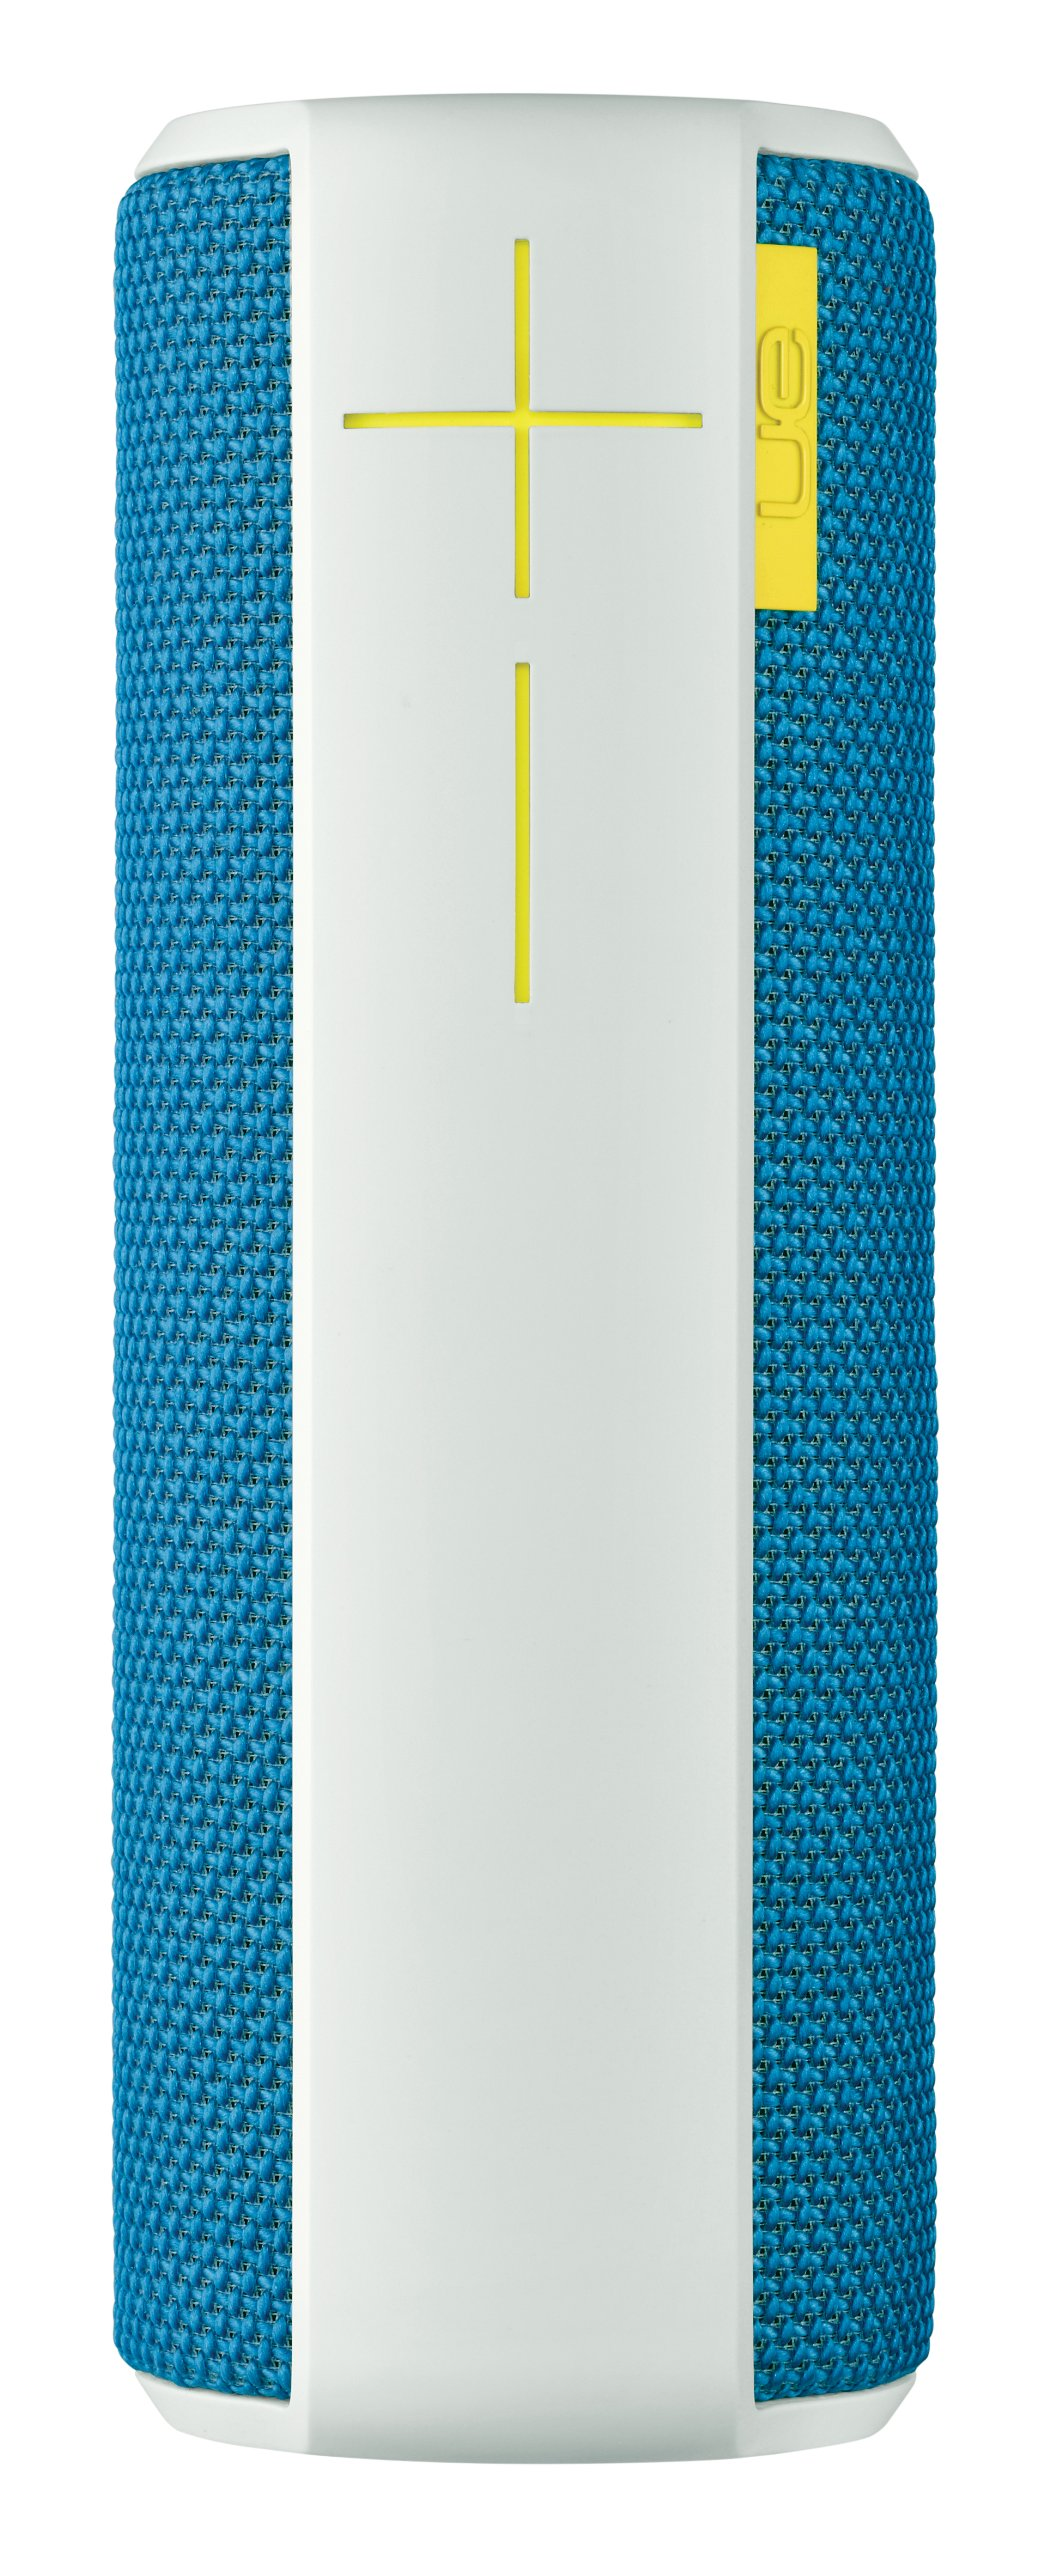 UE BOOM Wireless Speaker, Cyan Blue (Certified Refurbished)